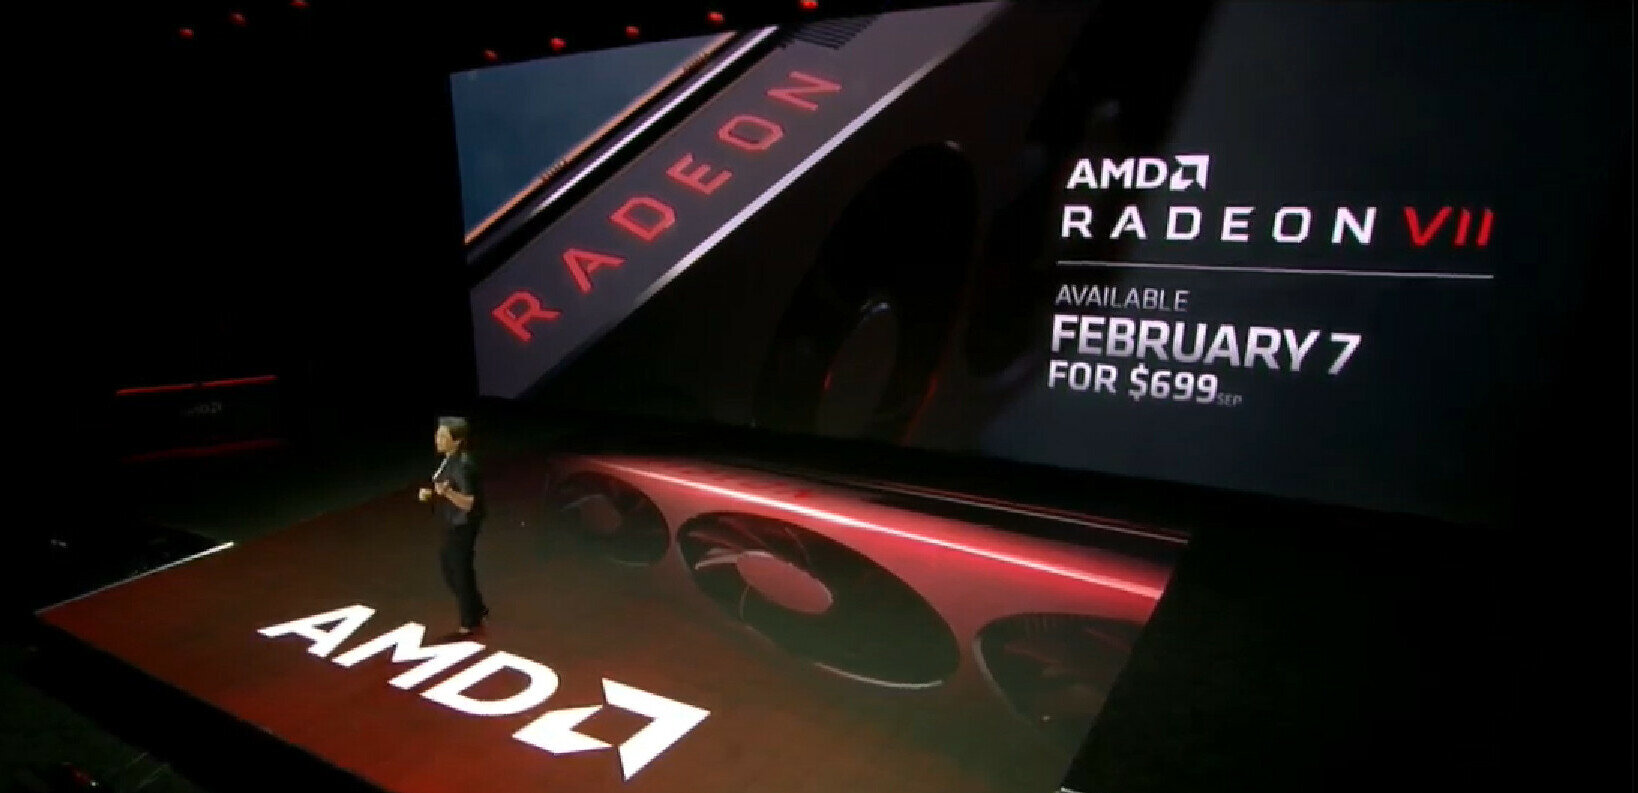 La Radeon VII d'AMD disponible le 7 février : 7 nm, performances d'une RTX 2080... 700 euros